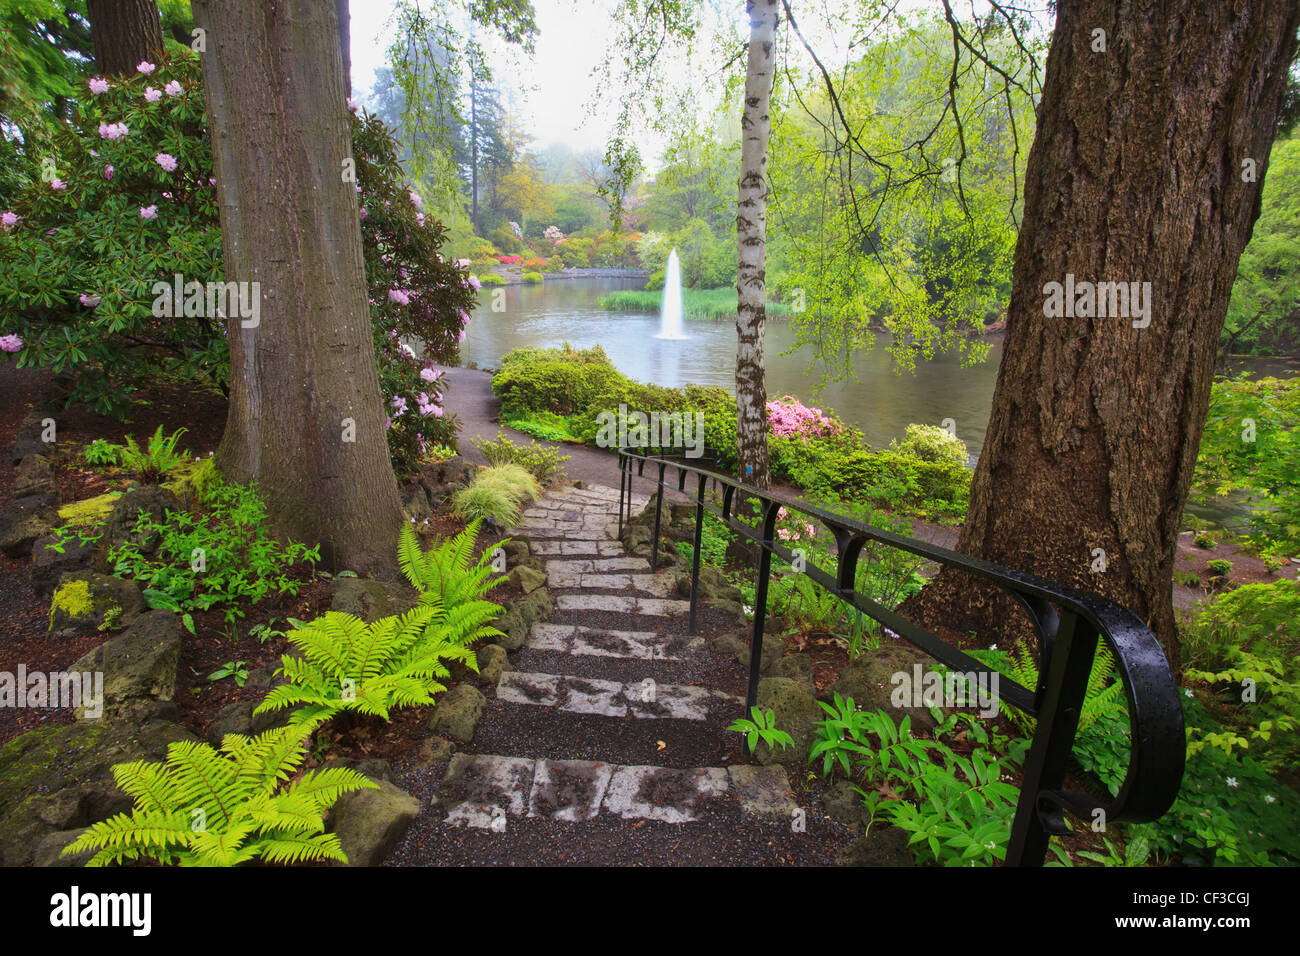 Spring Flowers In Crystal Springs Rhododendron Garden Portland Stock Photo Royalty Free Image